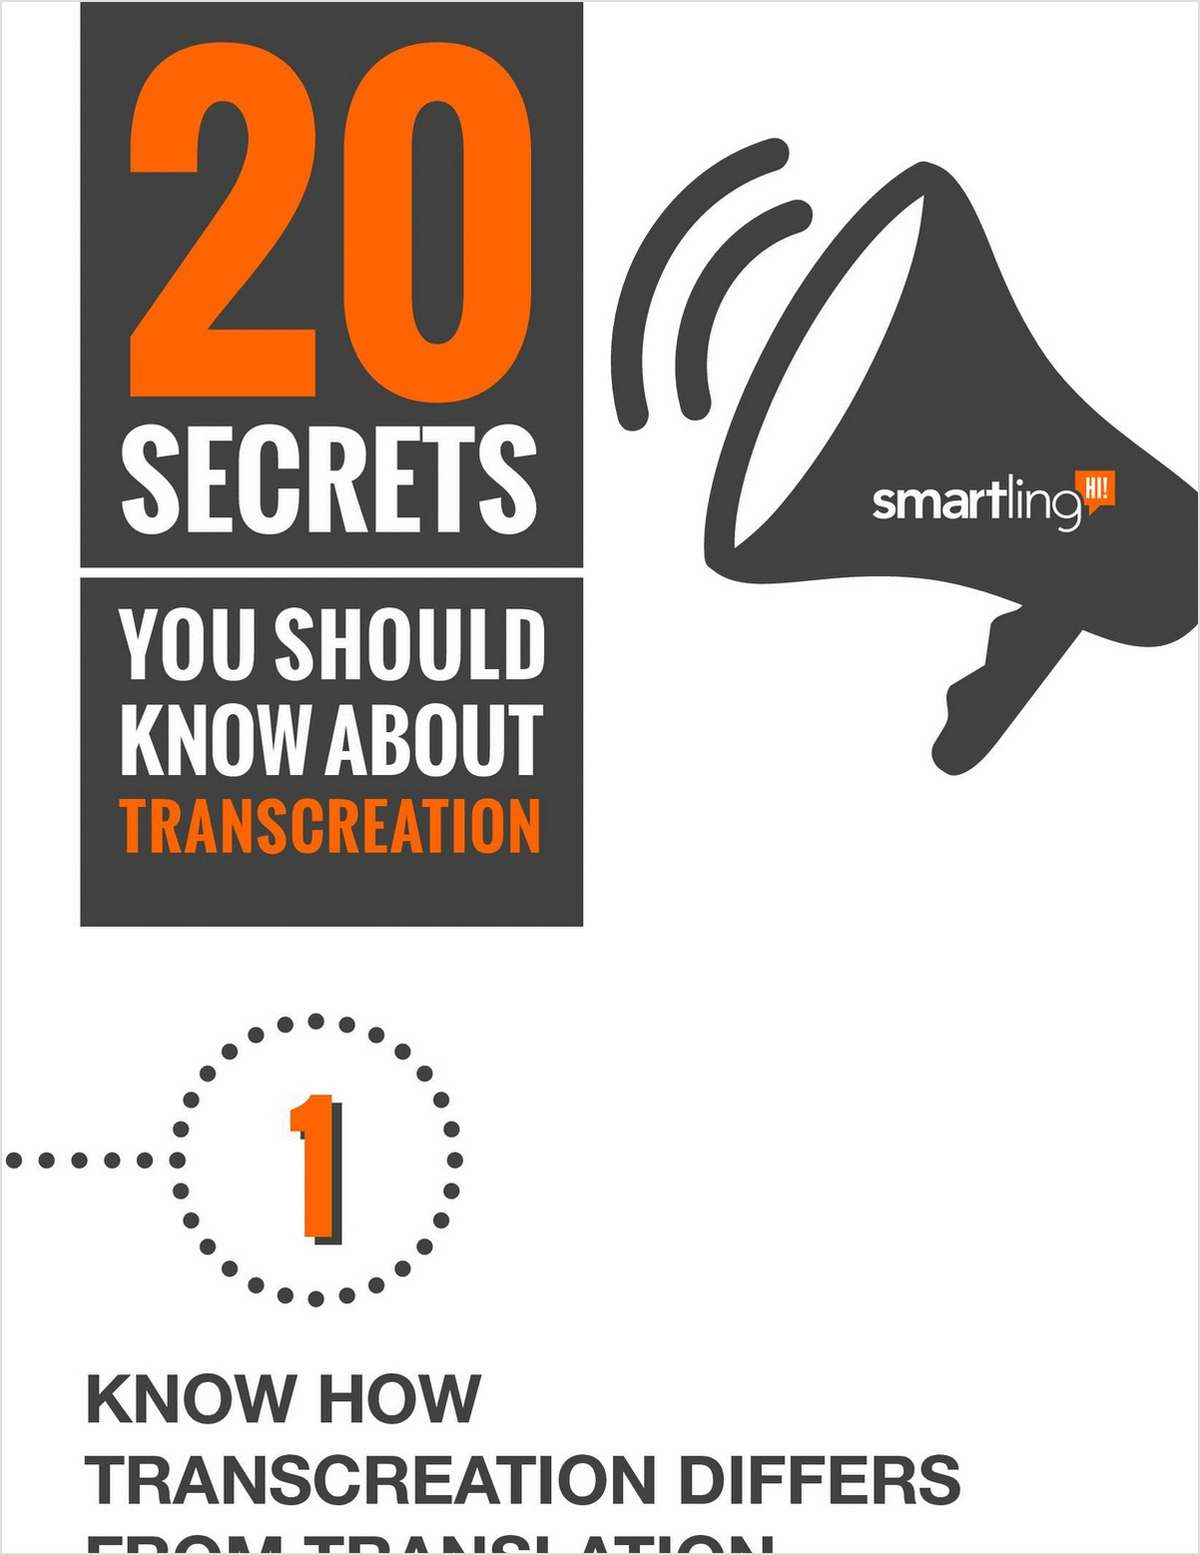 20 Secrets You Should Know About Transcreation